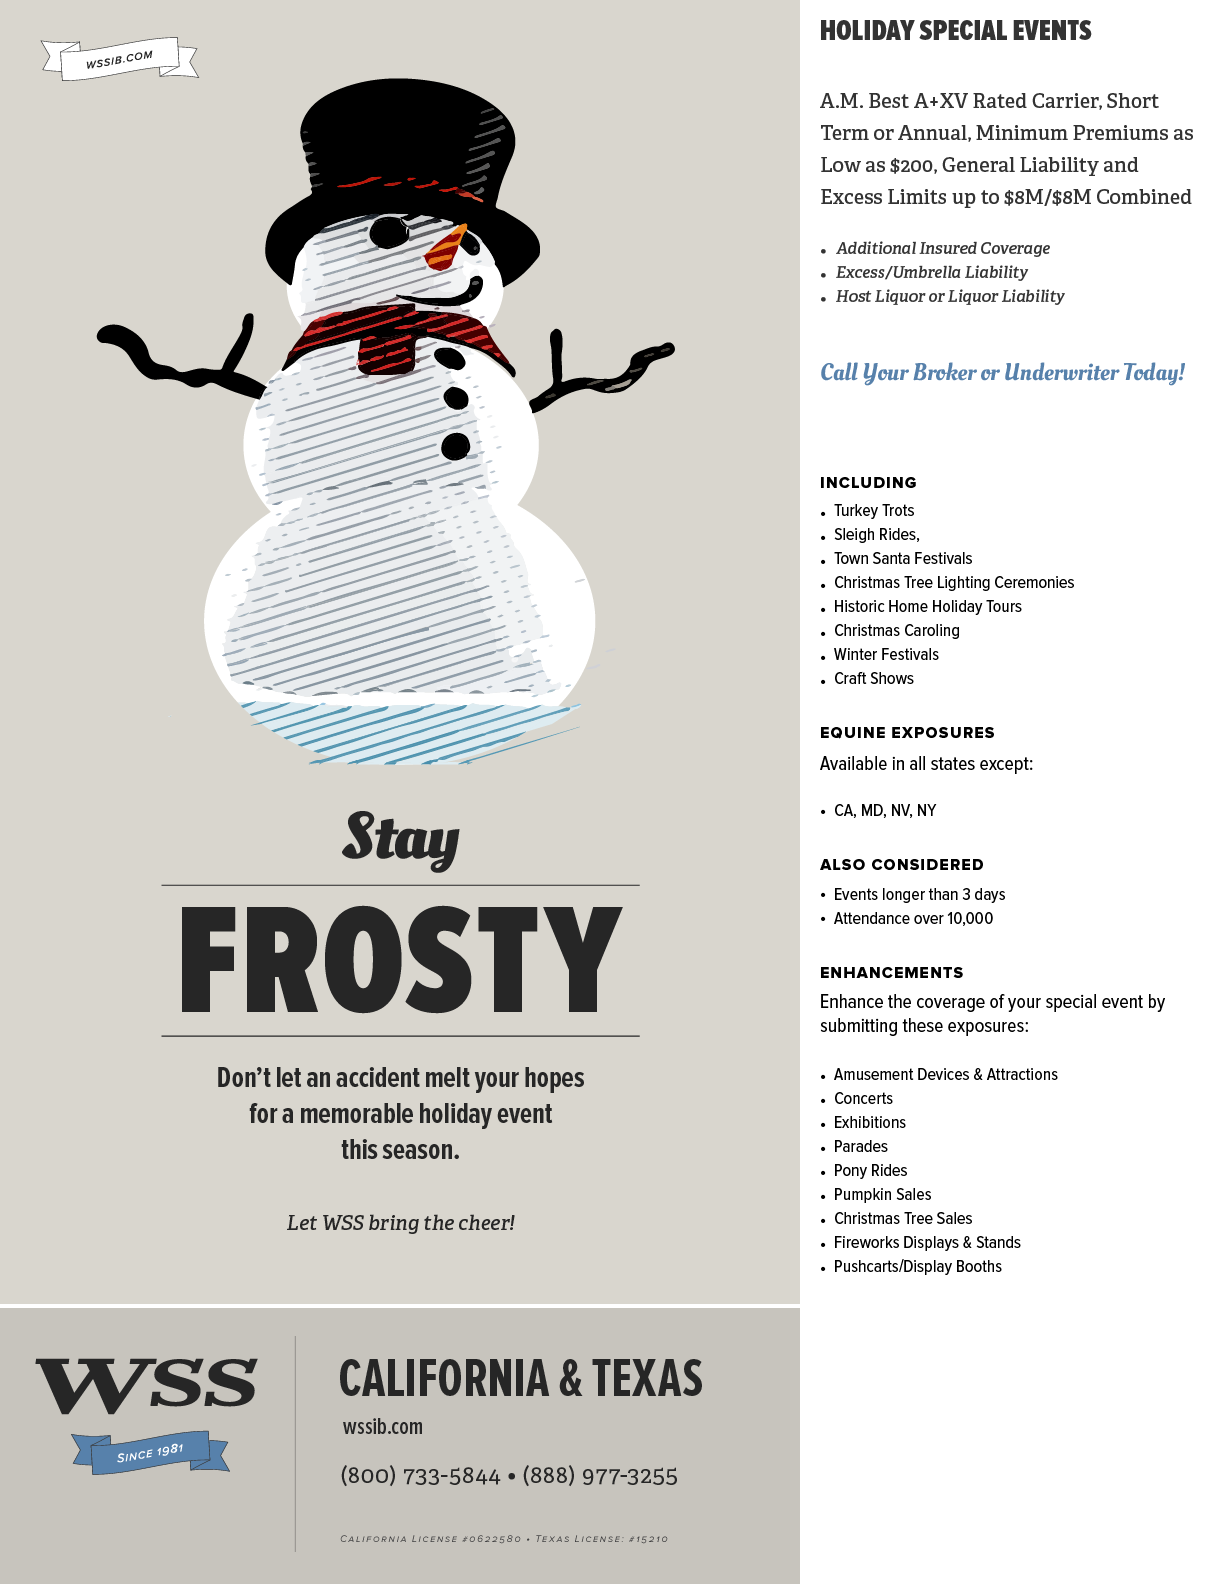 WSS-Flyer-HolidaySpecialEvents.png